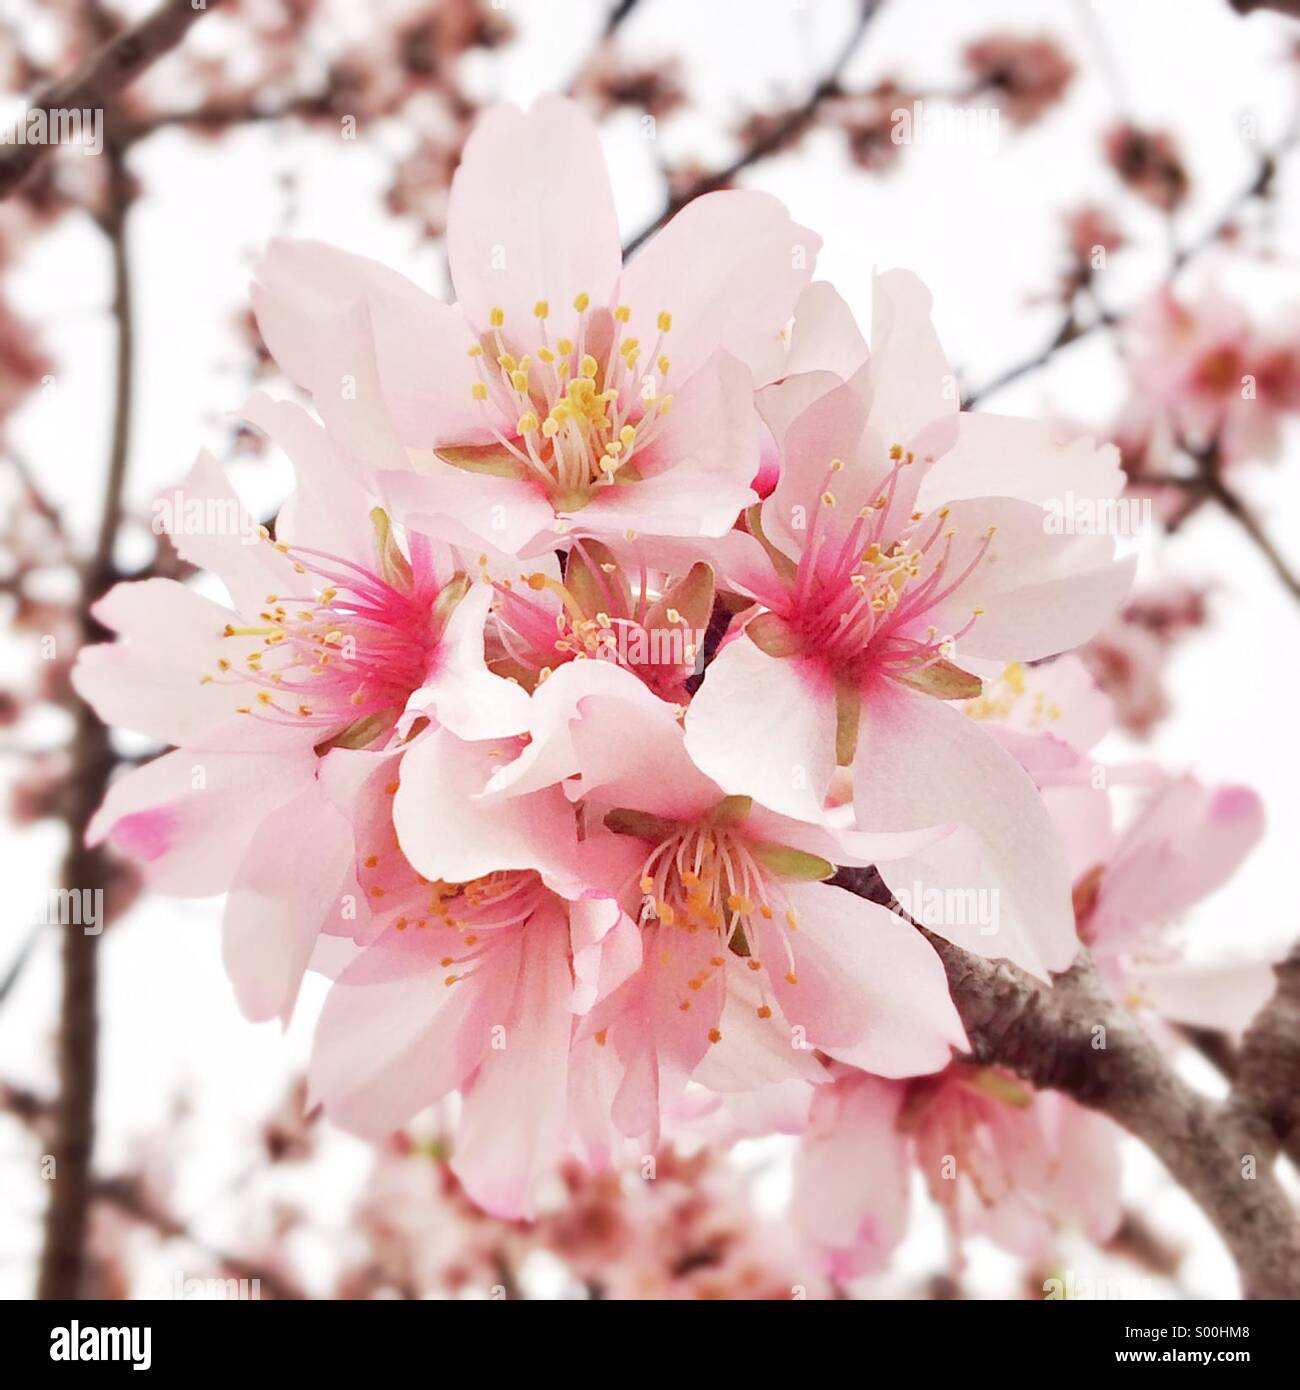 Spring day in February. All the almond trees are in bloom. - Stock Image